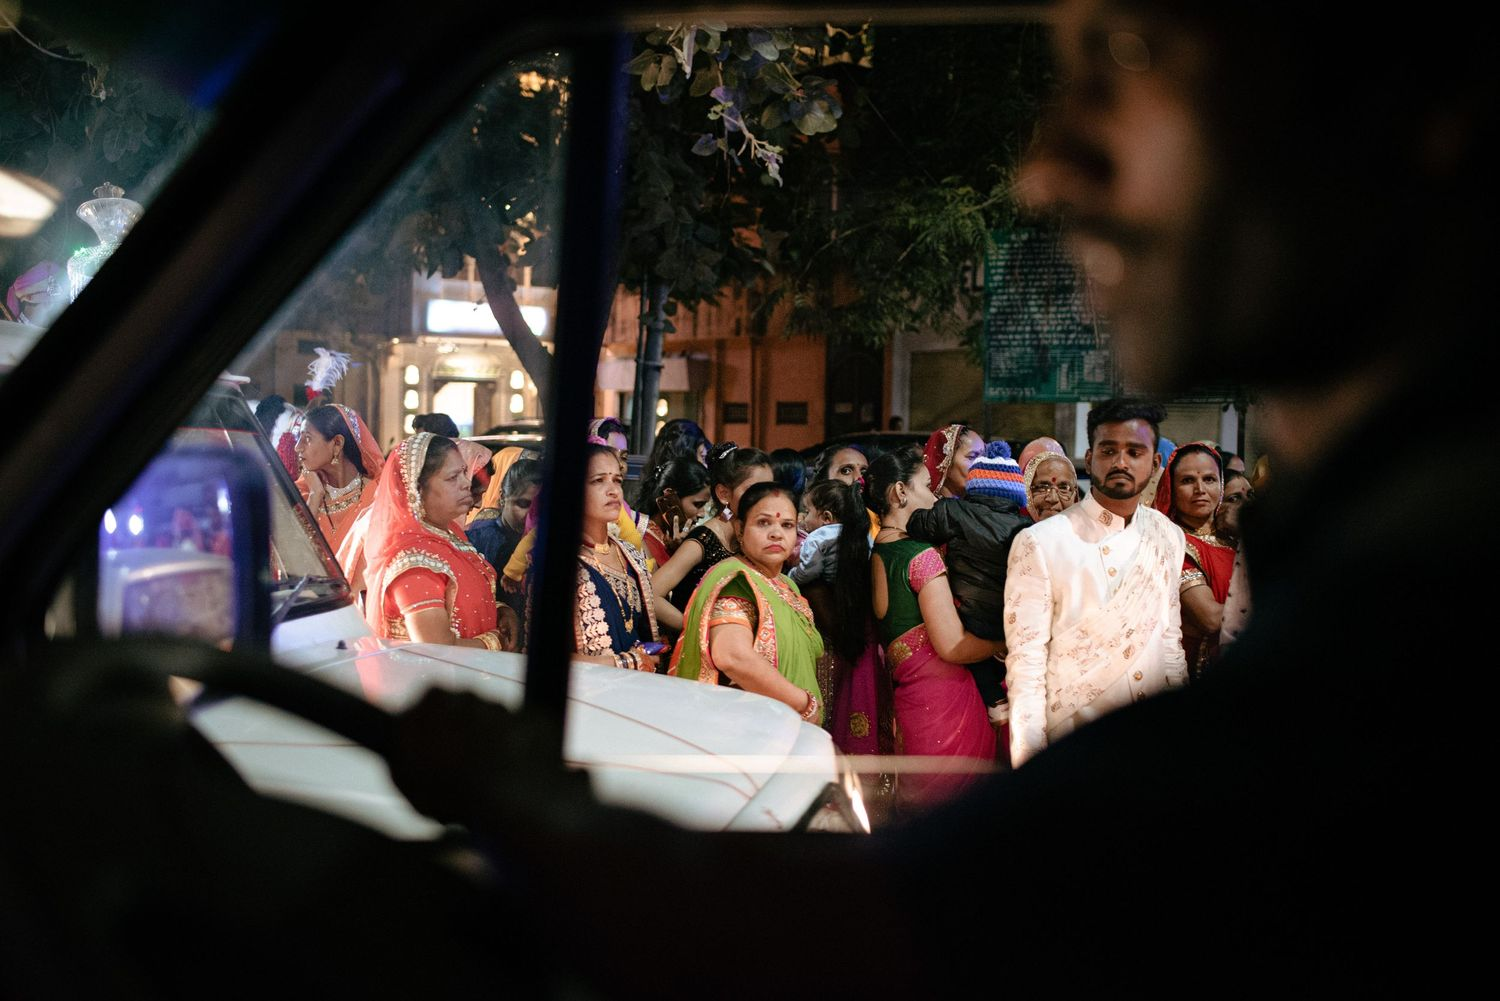 Crowd looking into taxi, Udaipur India.